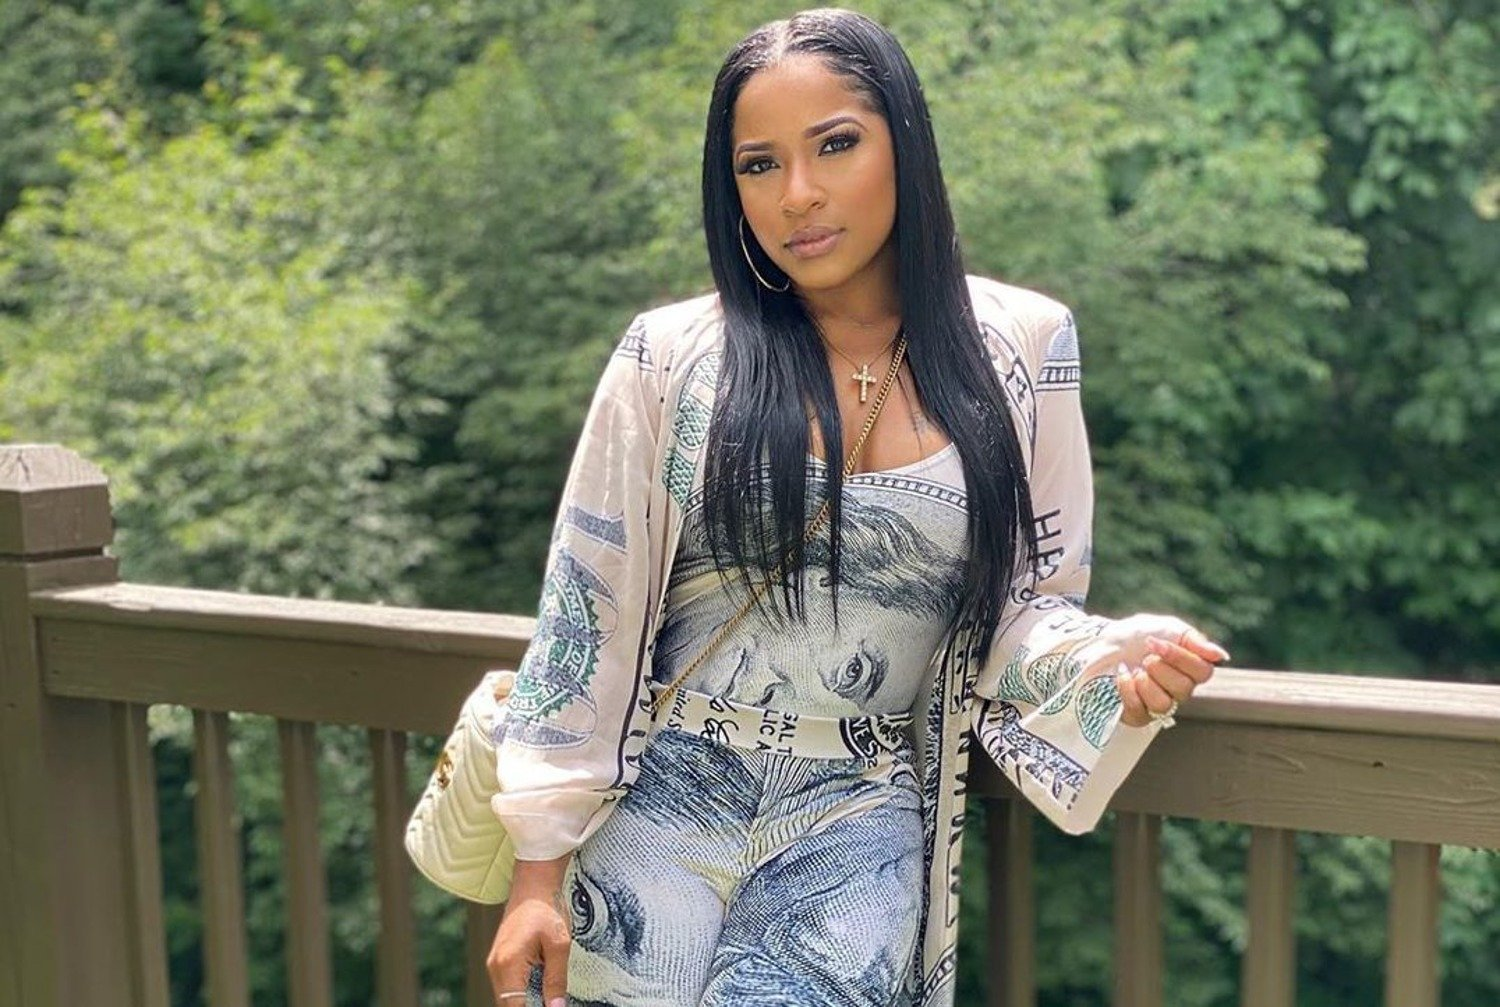 Toya Johnson Has An Early Birthday Dinner – See The Footage Of The Amazing Scenery And Decor